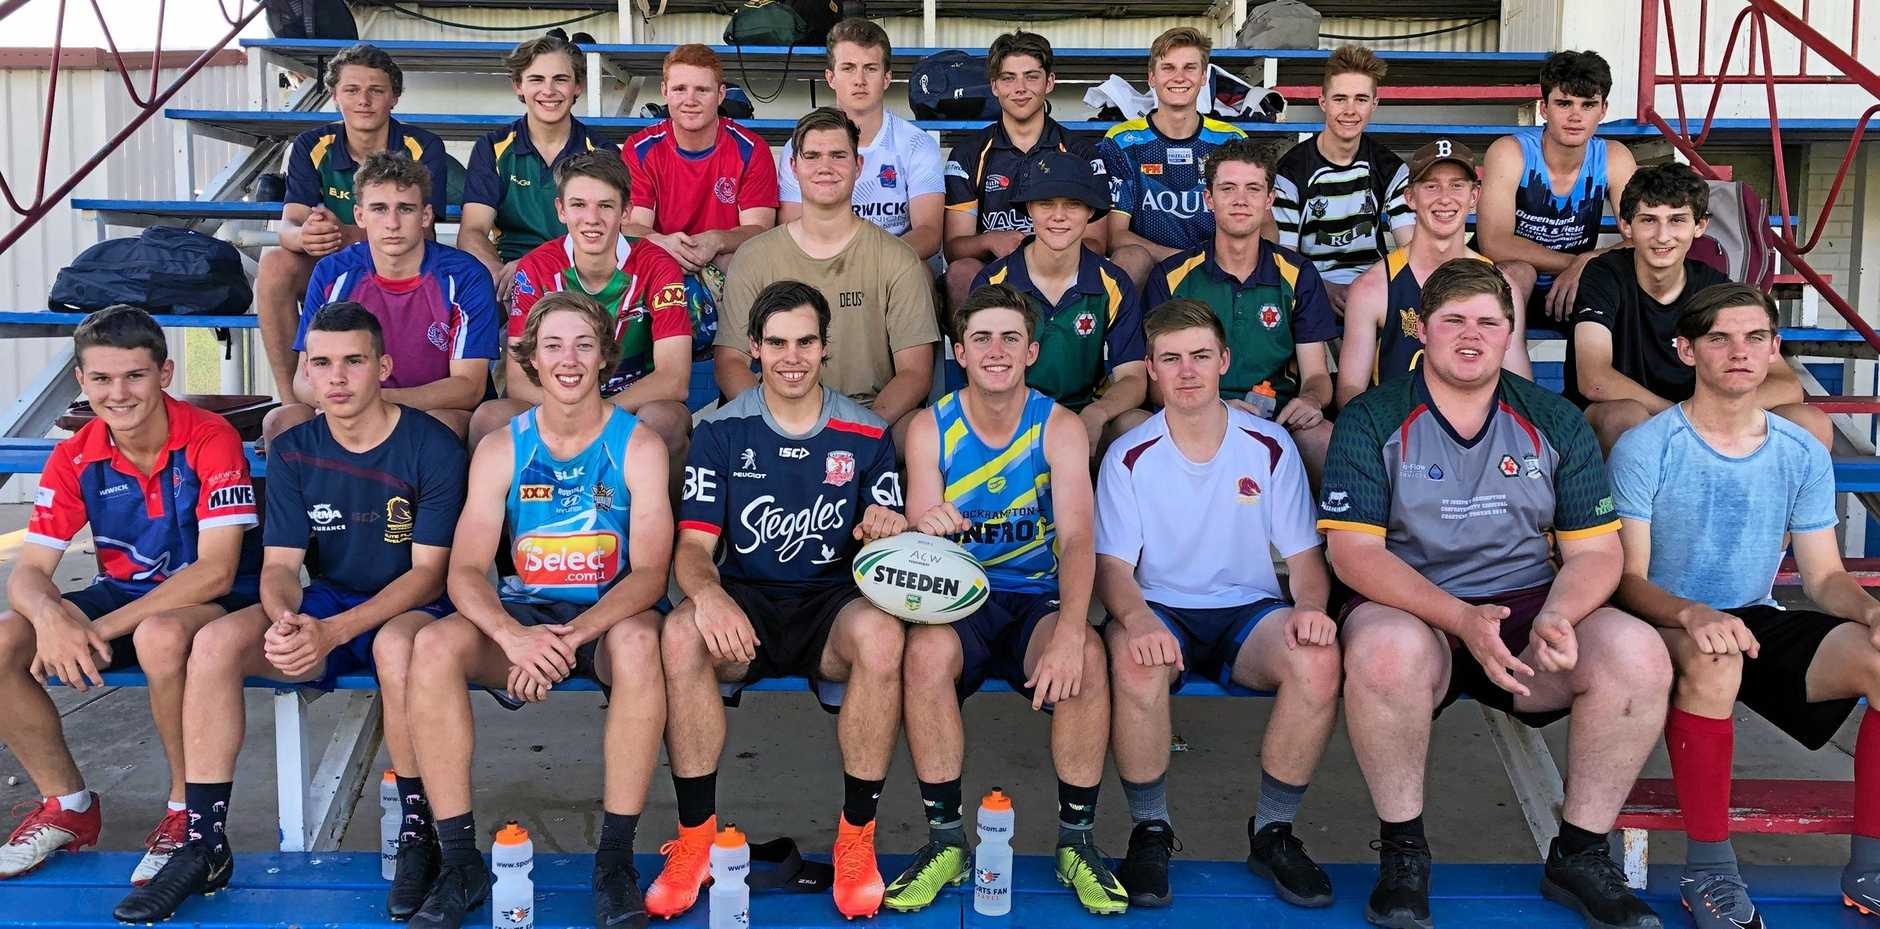 LONE SOLDIER: The Assumption College squad for the Confraternity Shield. Stanthorpe's Lachlan Mahoney is pictured back row, second from right, alongside his team mates.